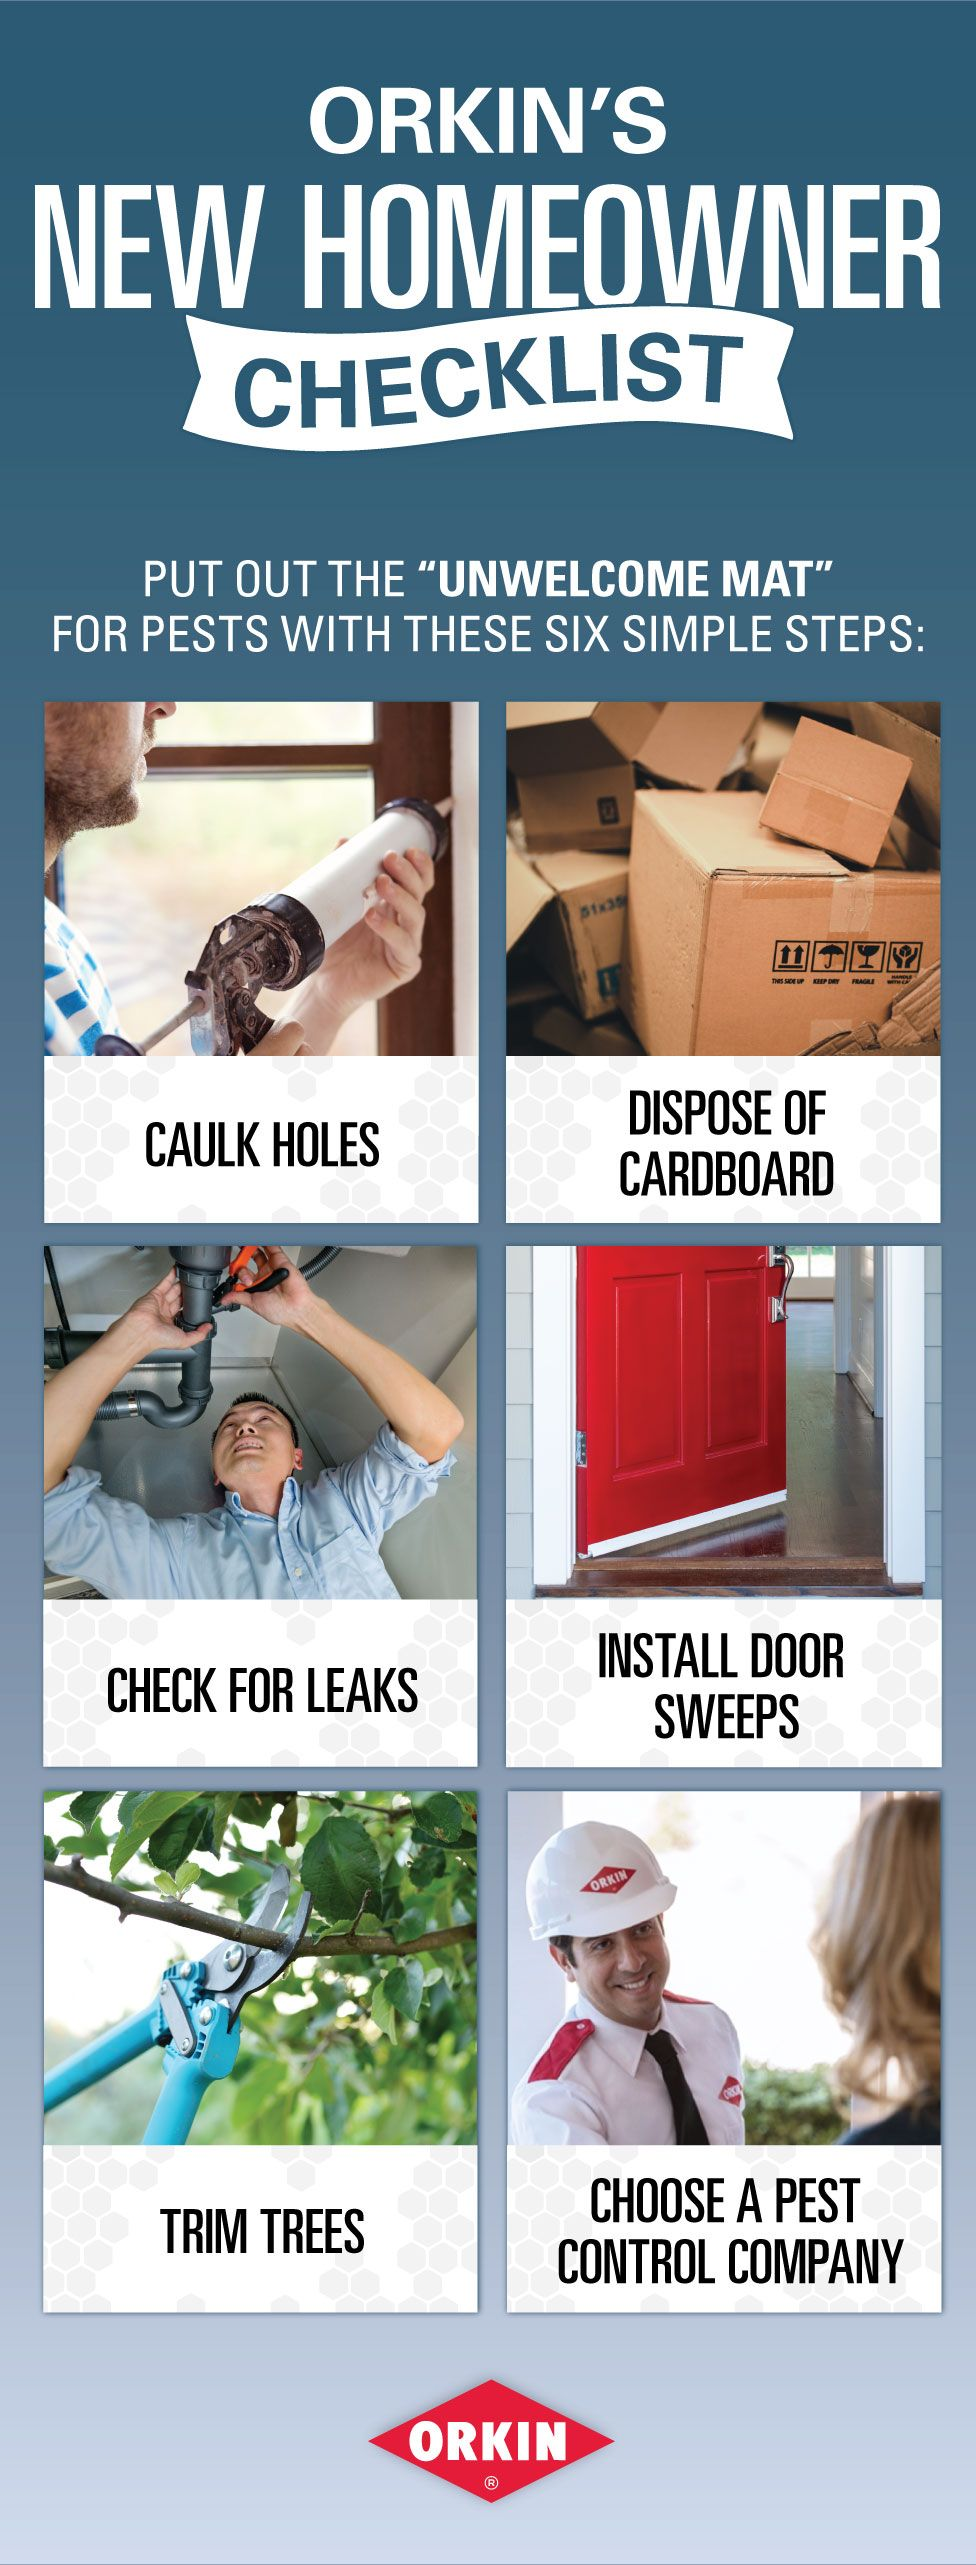 Protect Your New Home With These Simple Steps Termite Control Termite Treatment Termites